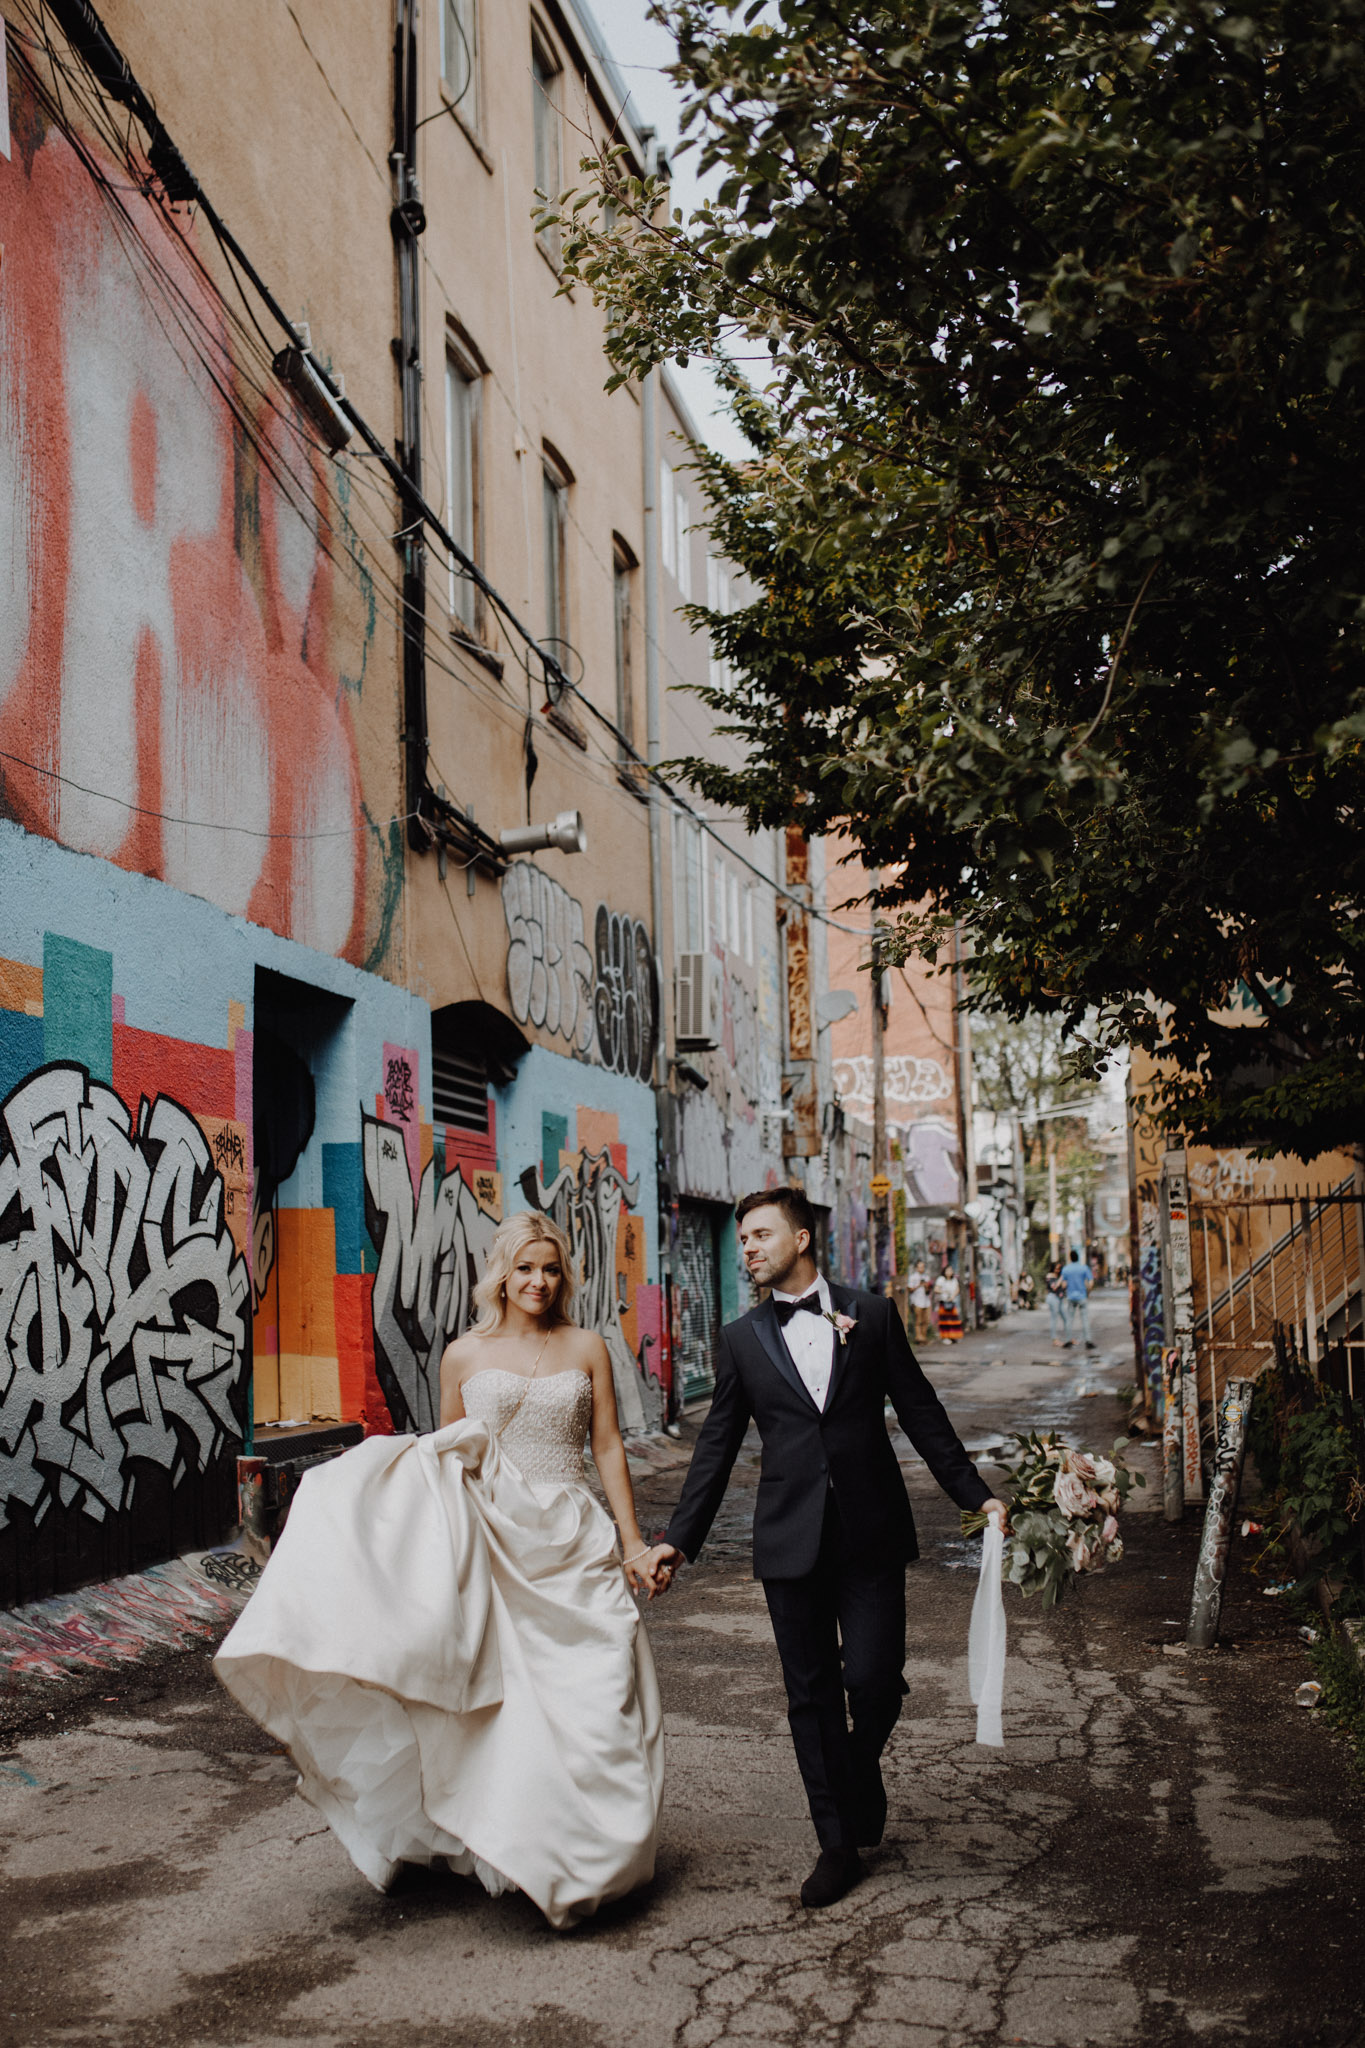 Graffiti alley walk at The Burroughes Wedding. Love By Lynzie. Wedding Photographer Jennifer See Studios.